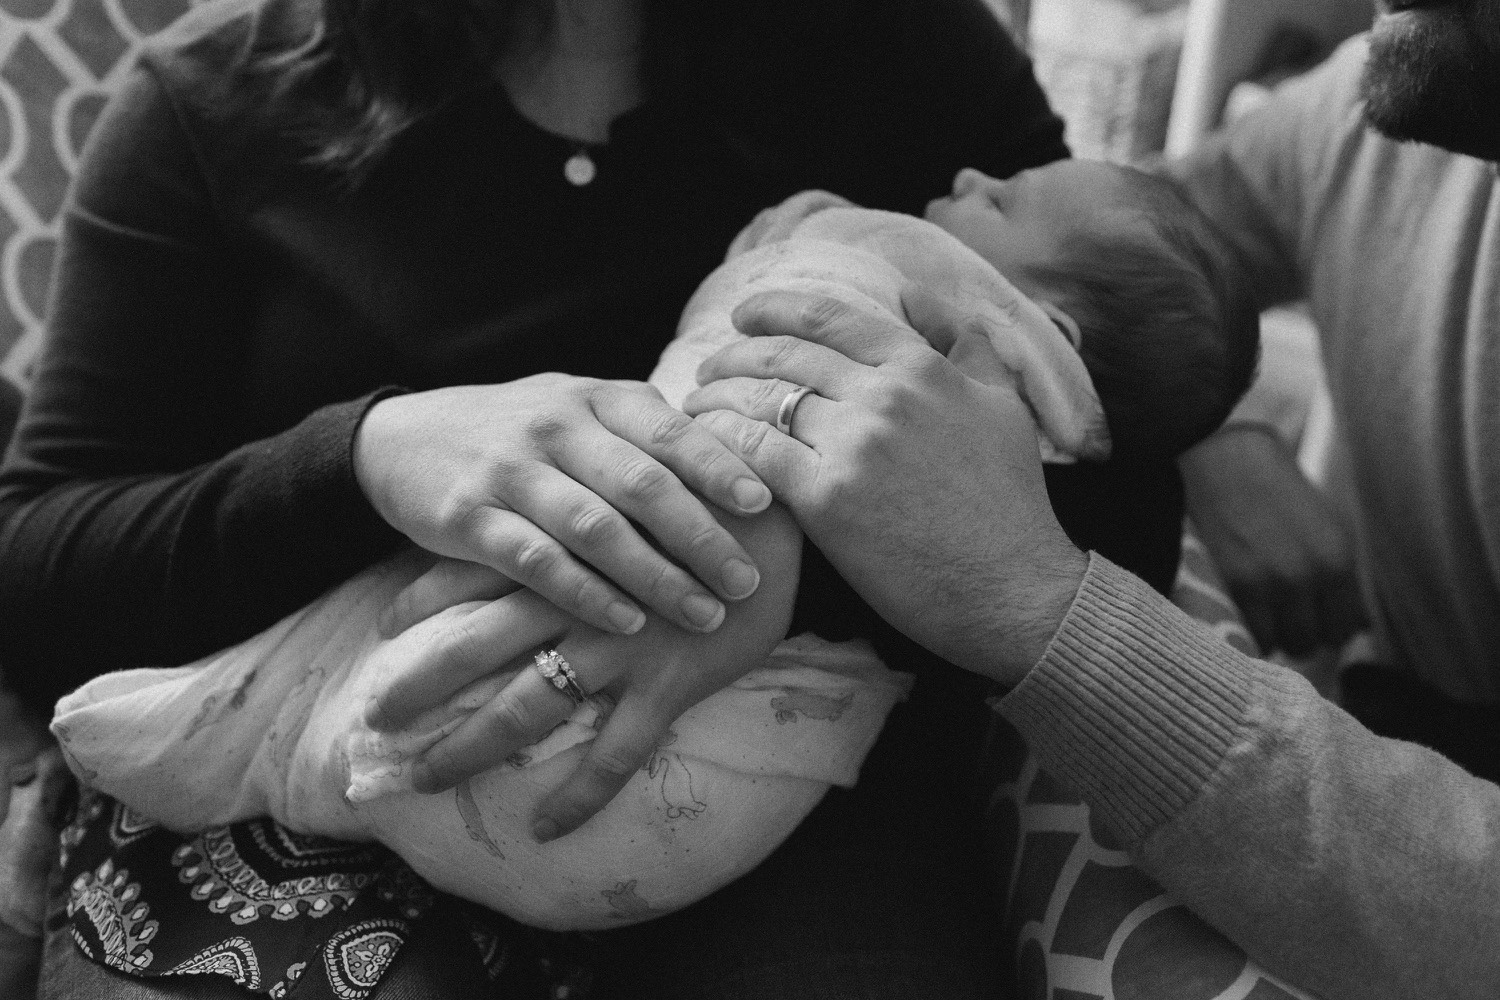 0005_16_10_12_rader_family_0023_newborn,_family_lifestyle,_Candid_photography,.jpg